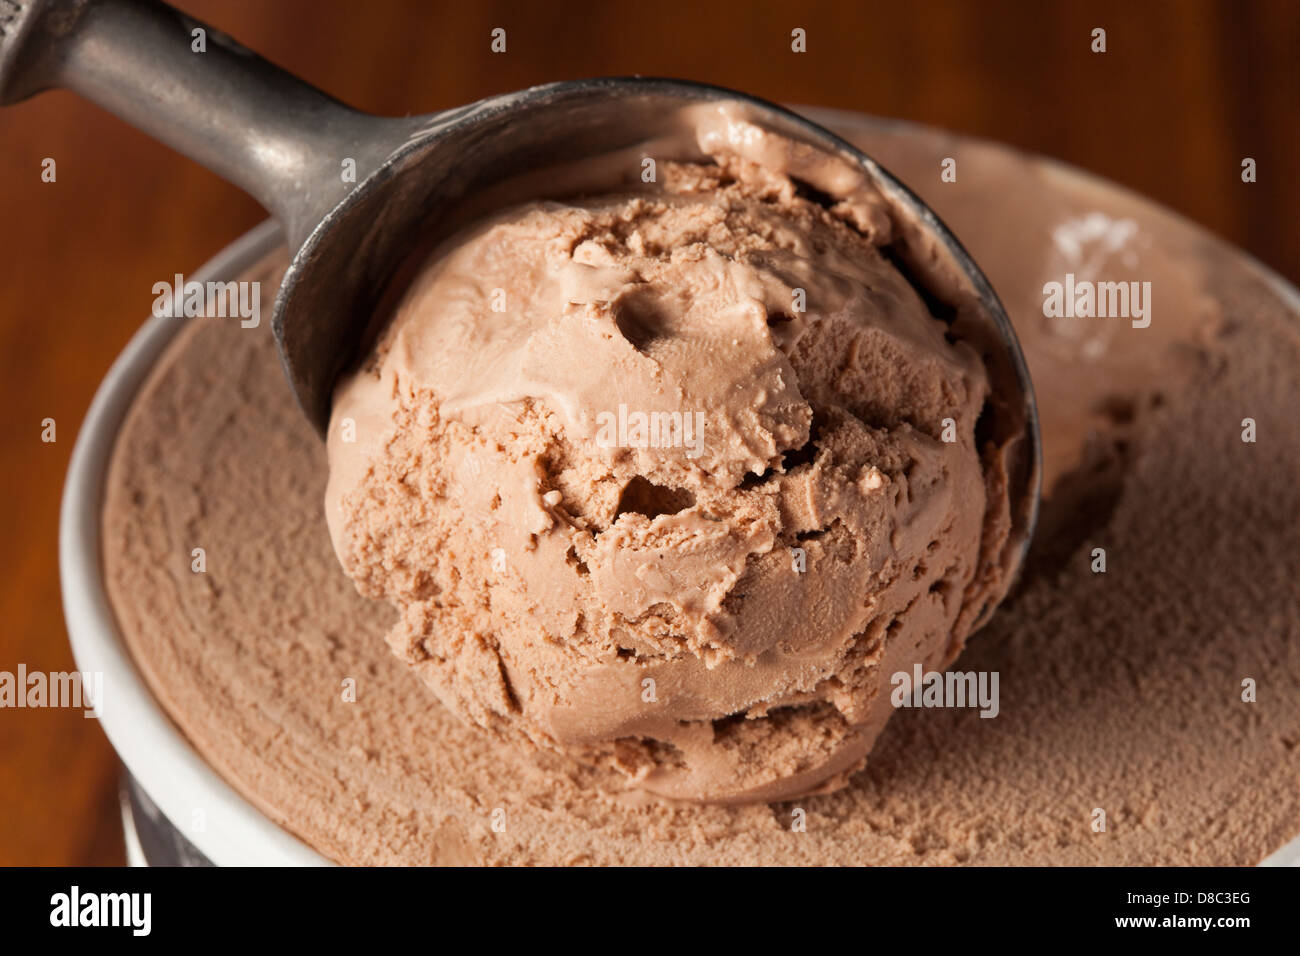 Cold Organic Chocolate ice Cream against a background - Stock Image